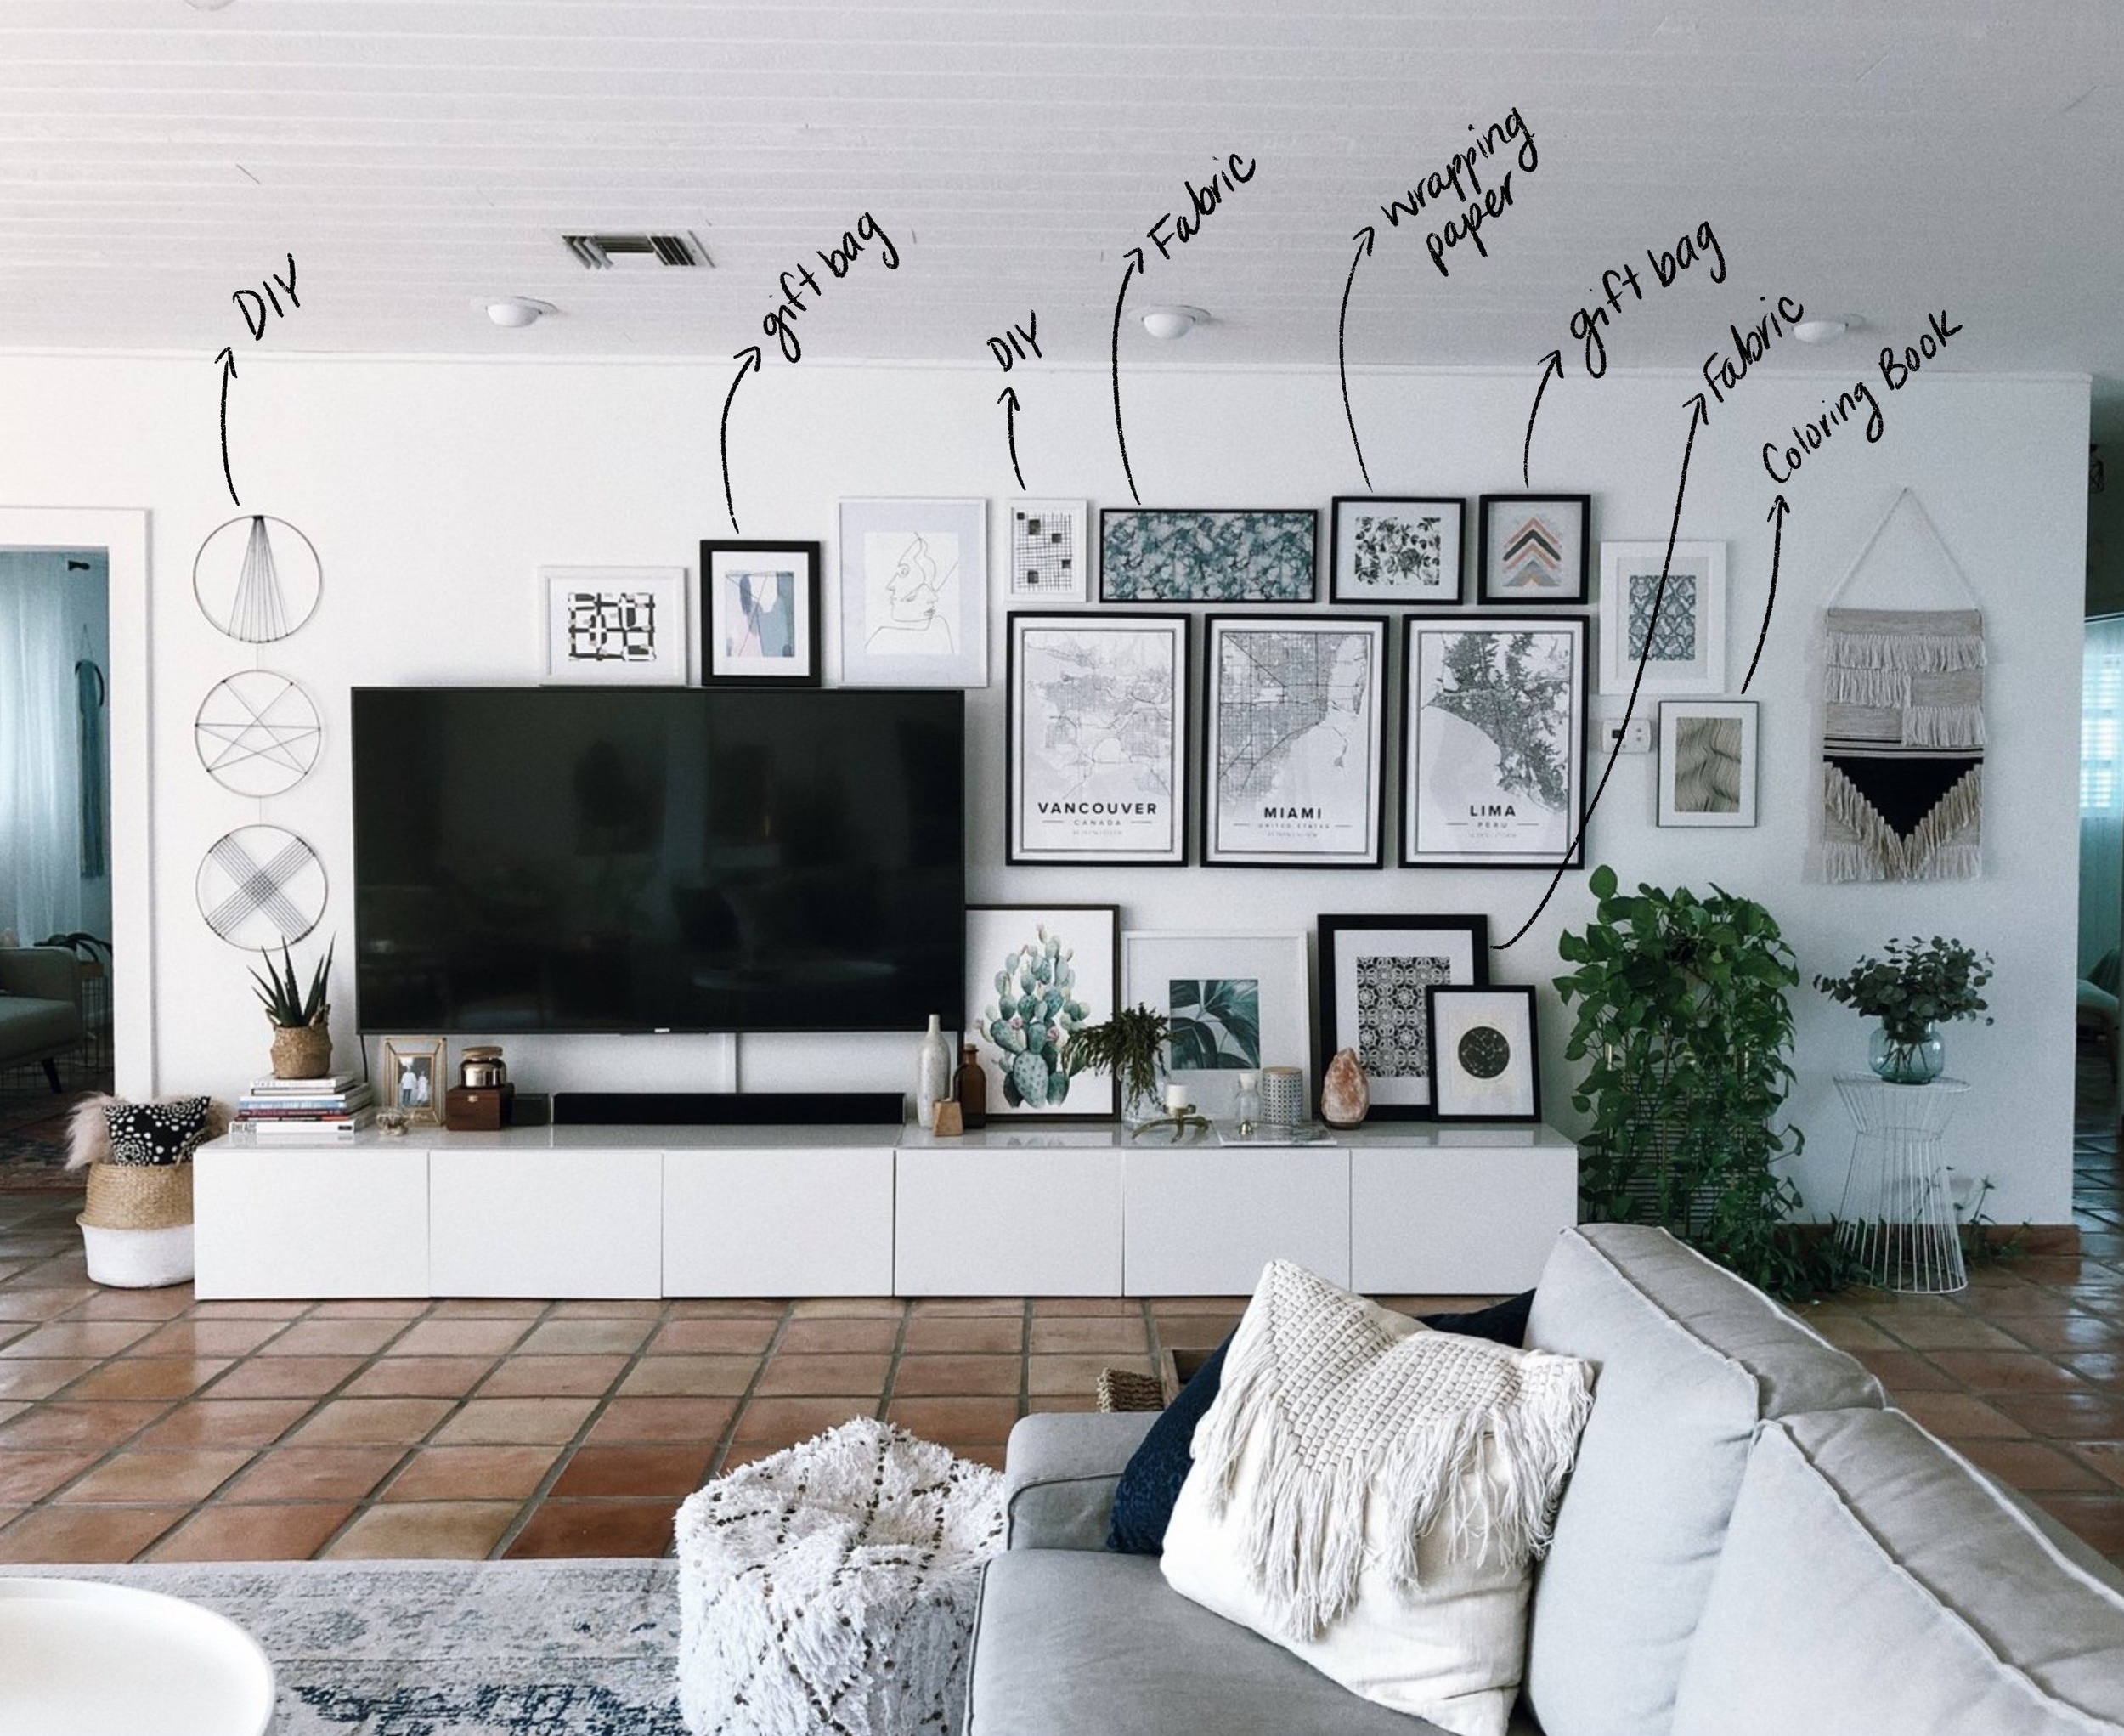 home decor wall art life hacks easy diy artwork projects to try modern minimal interior design tips and tricks the weekend gypsy